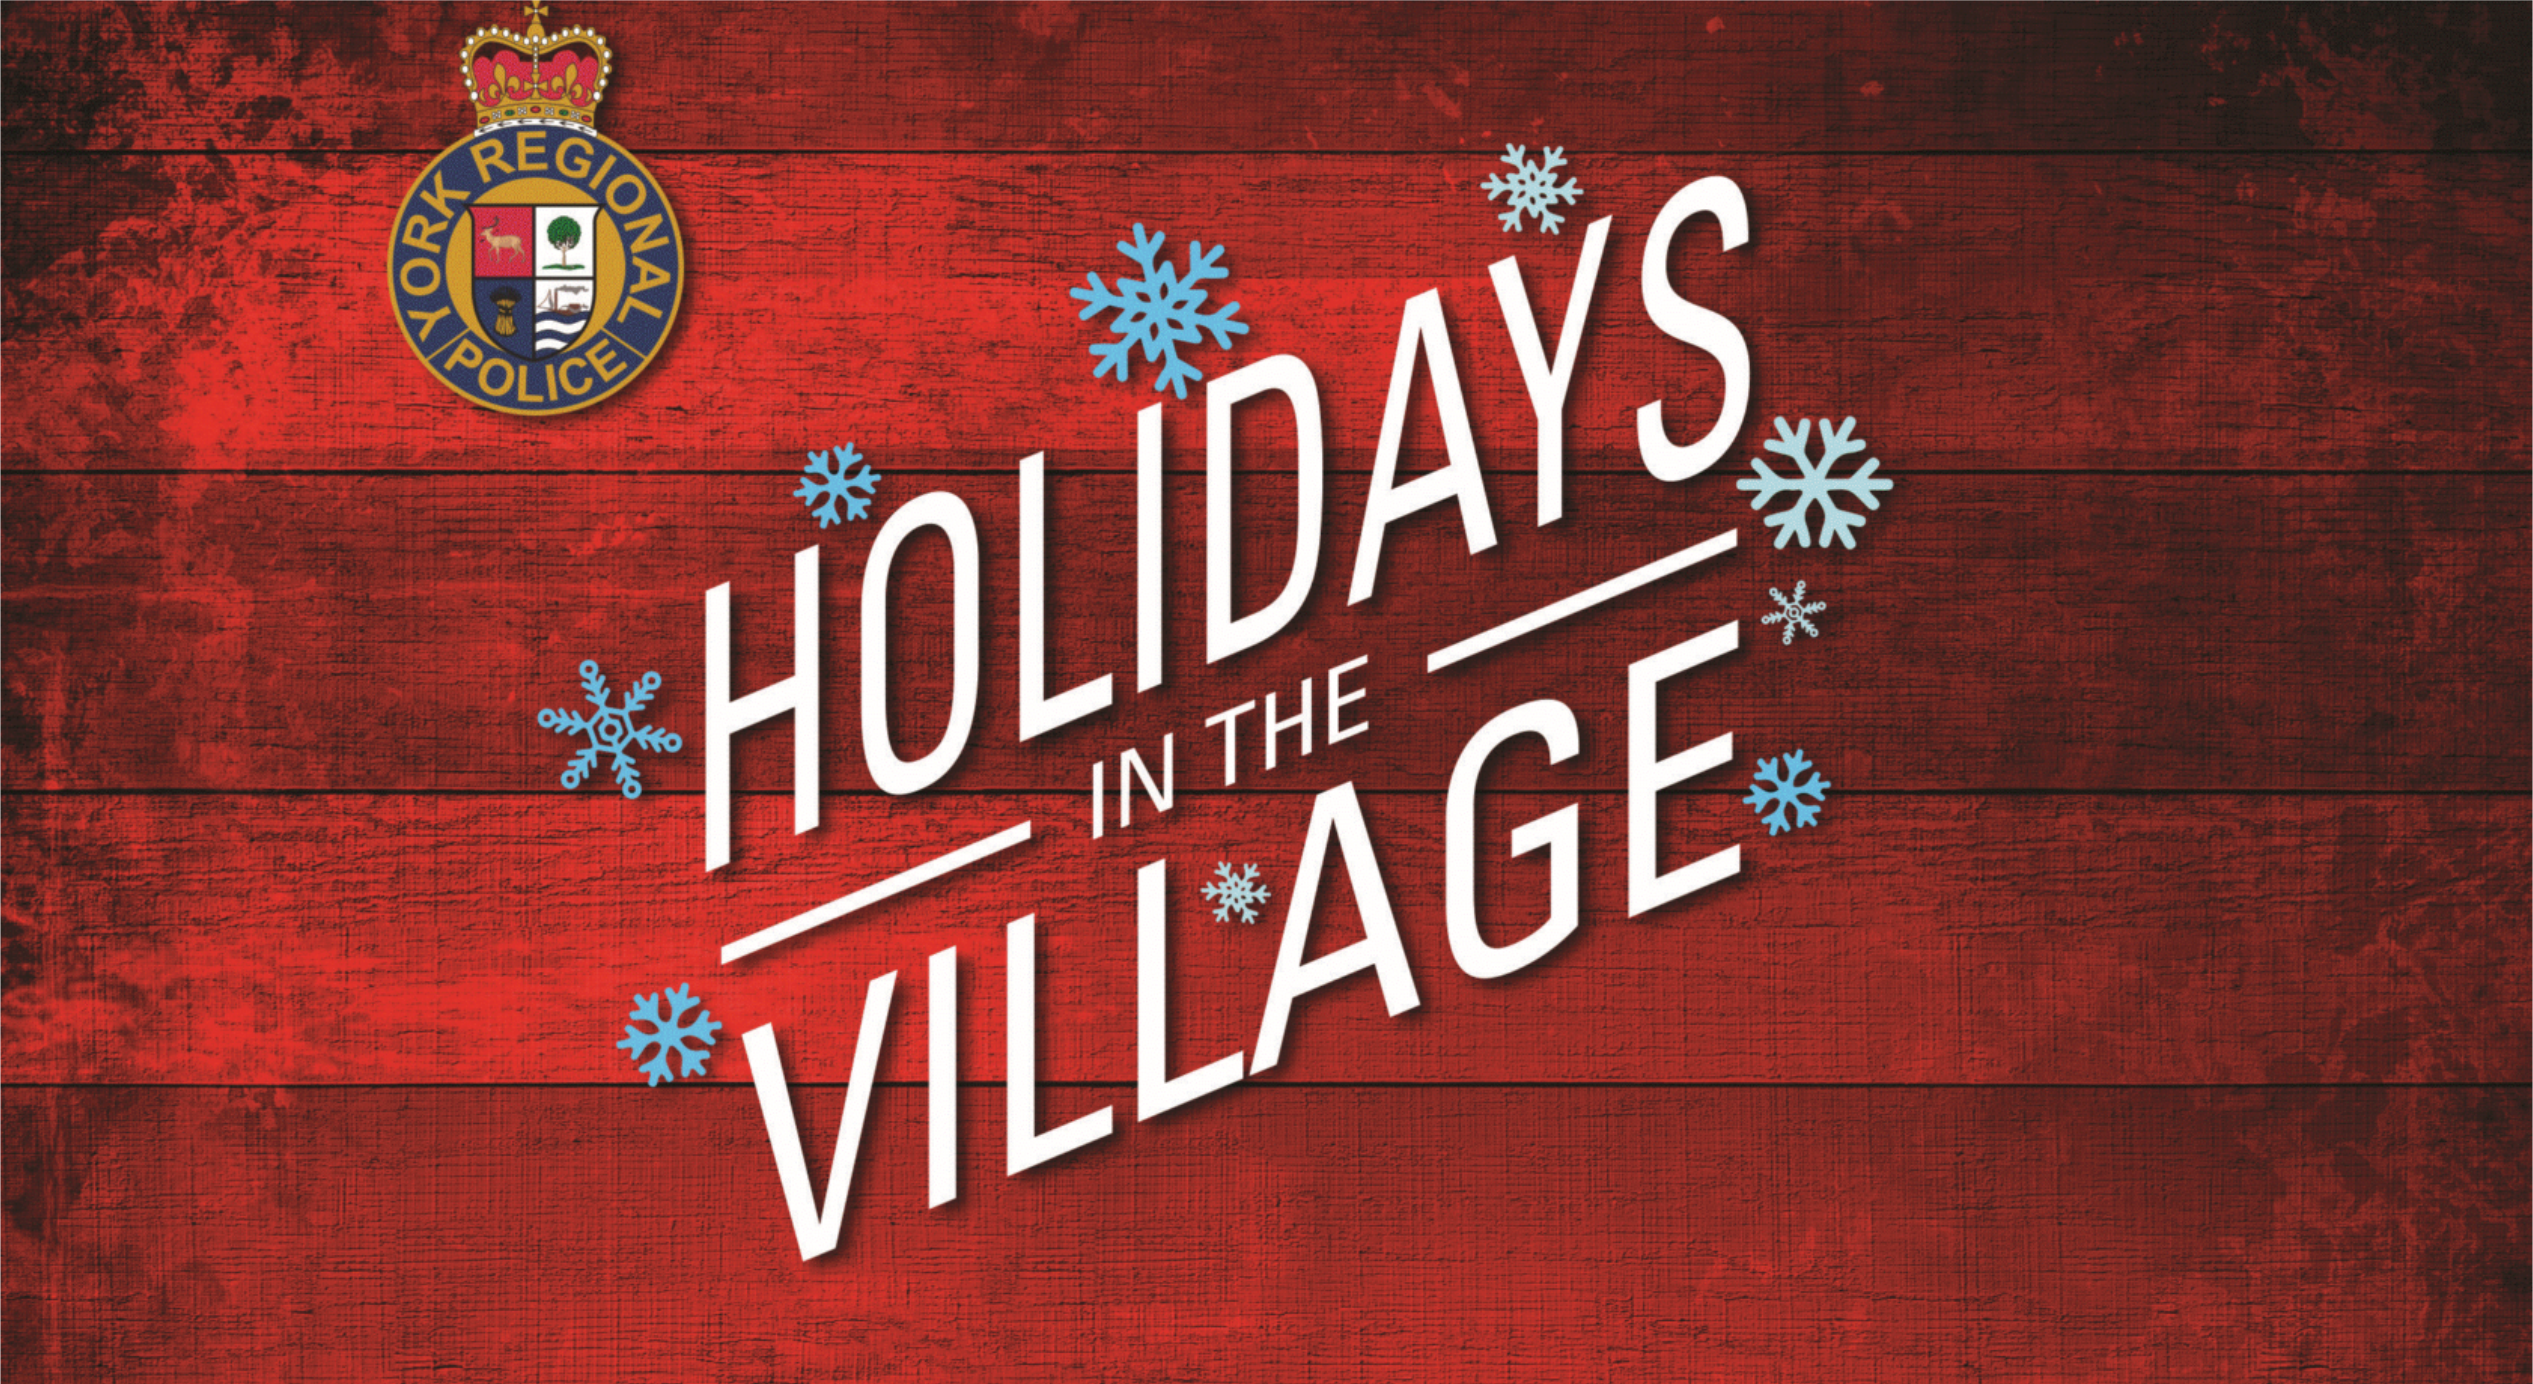 Dec 3: York Regional Police - Holidays in the Village